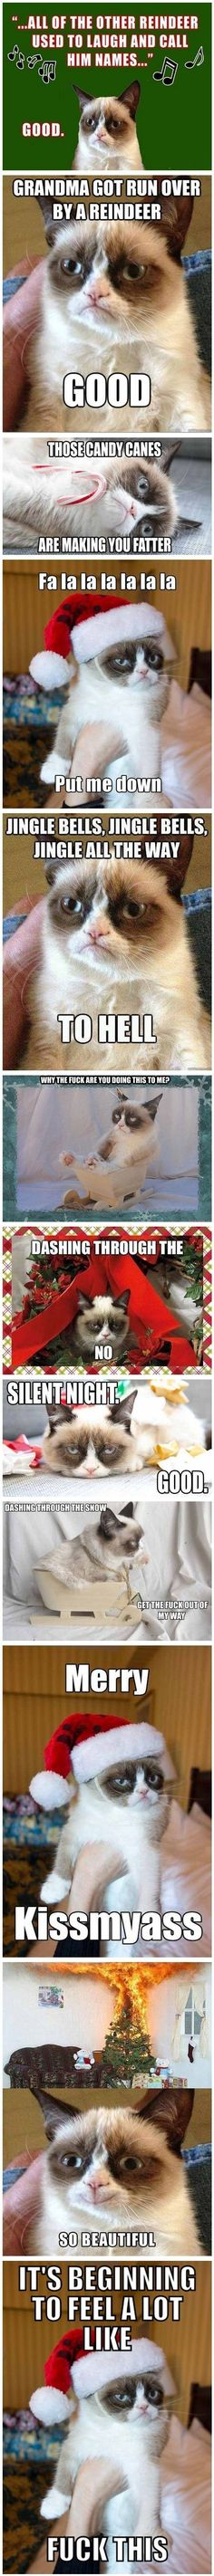 Grumpy Cat At Christmas hahahaha